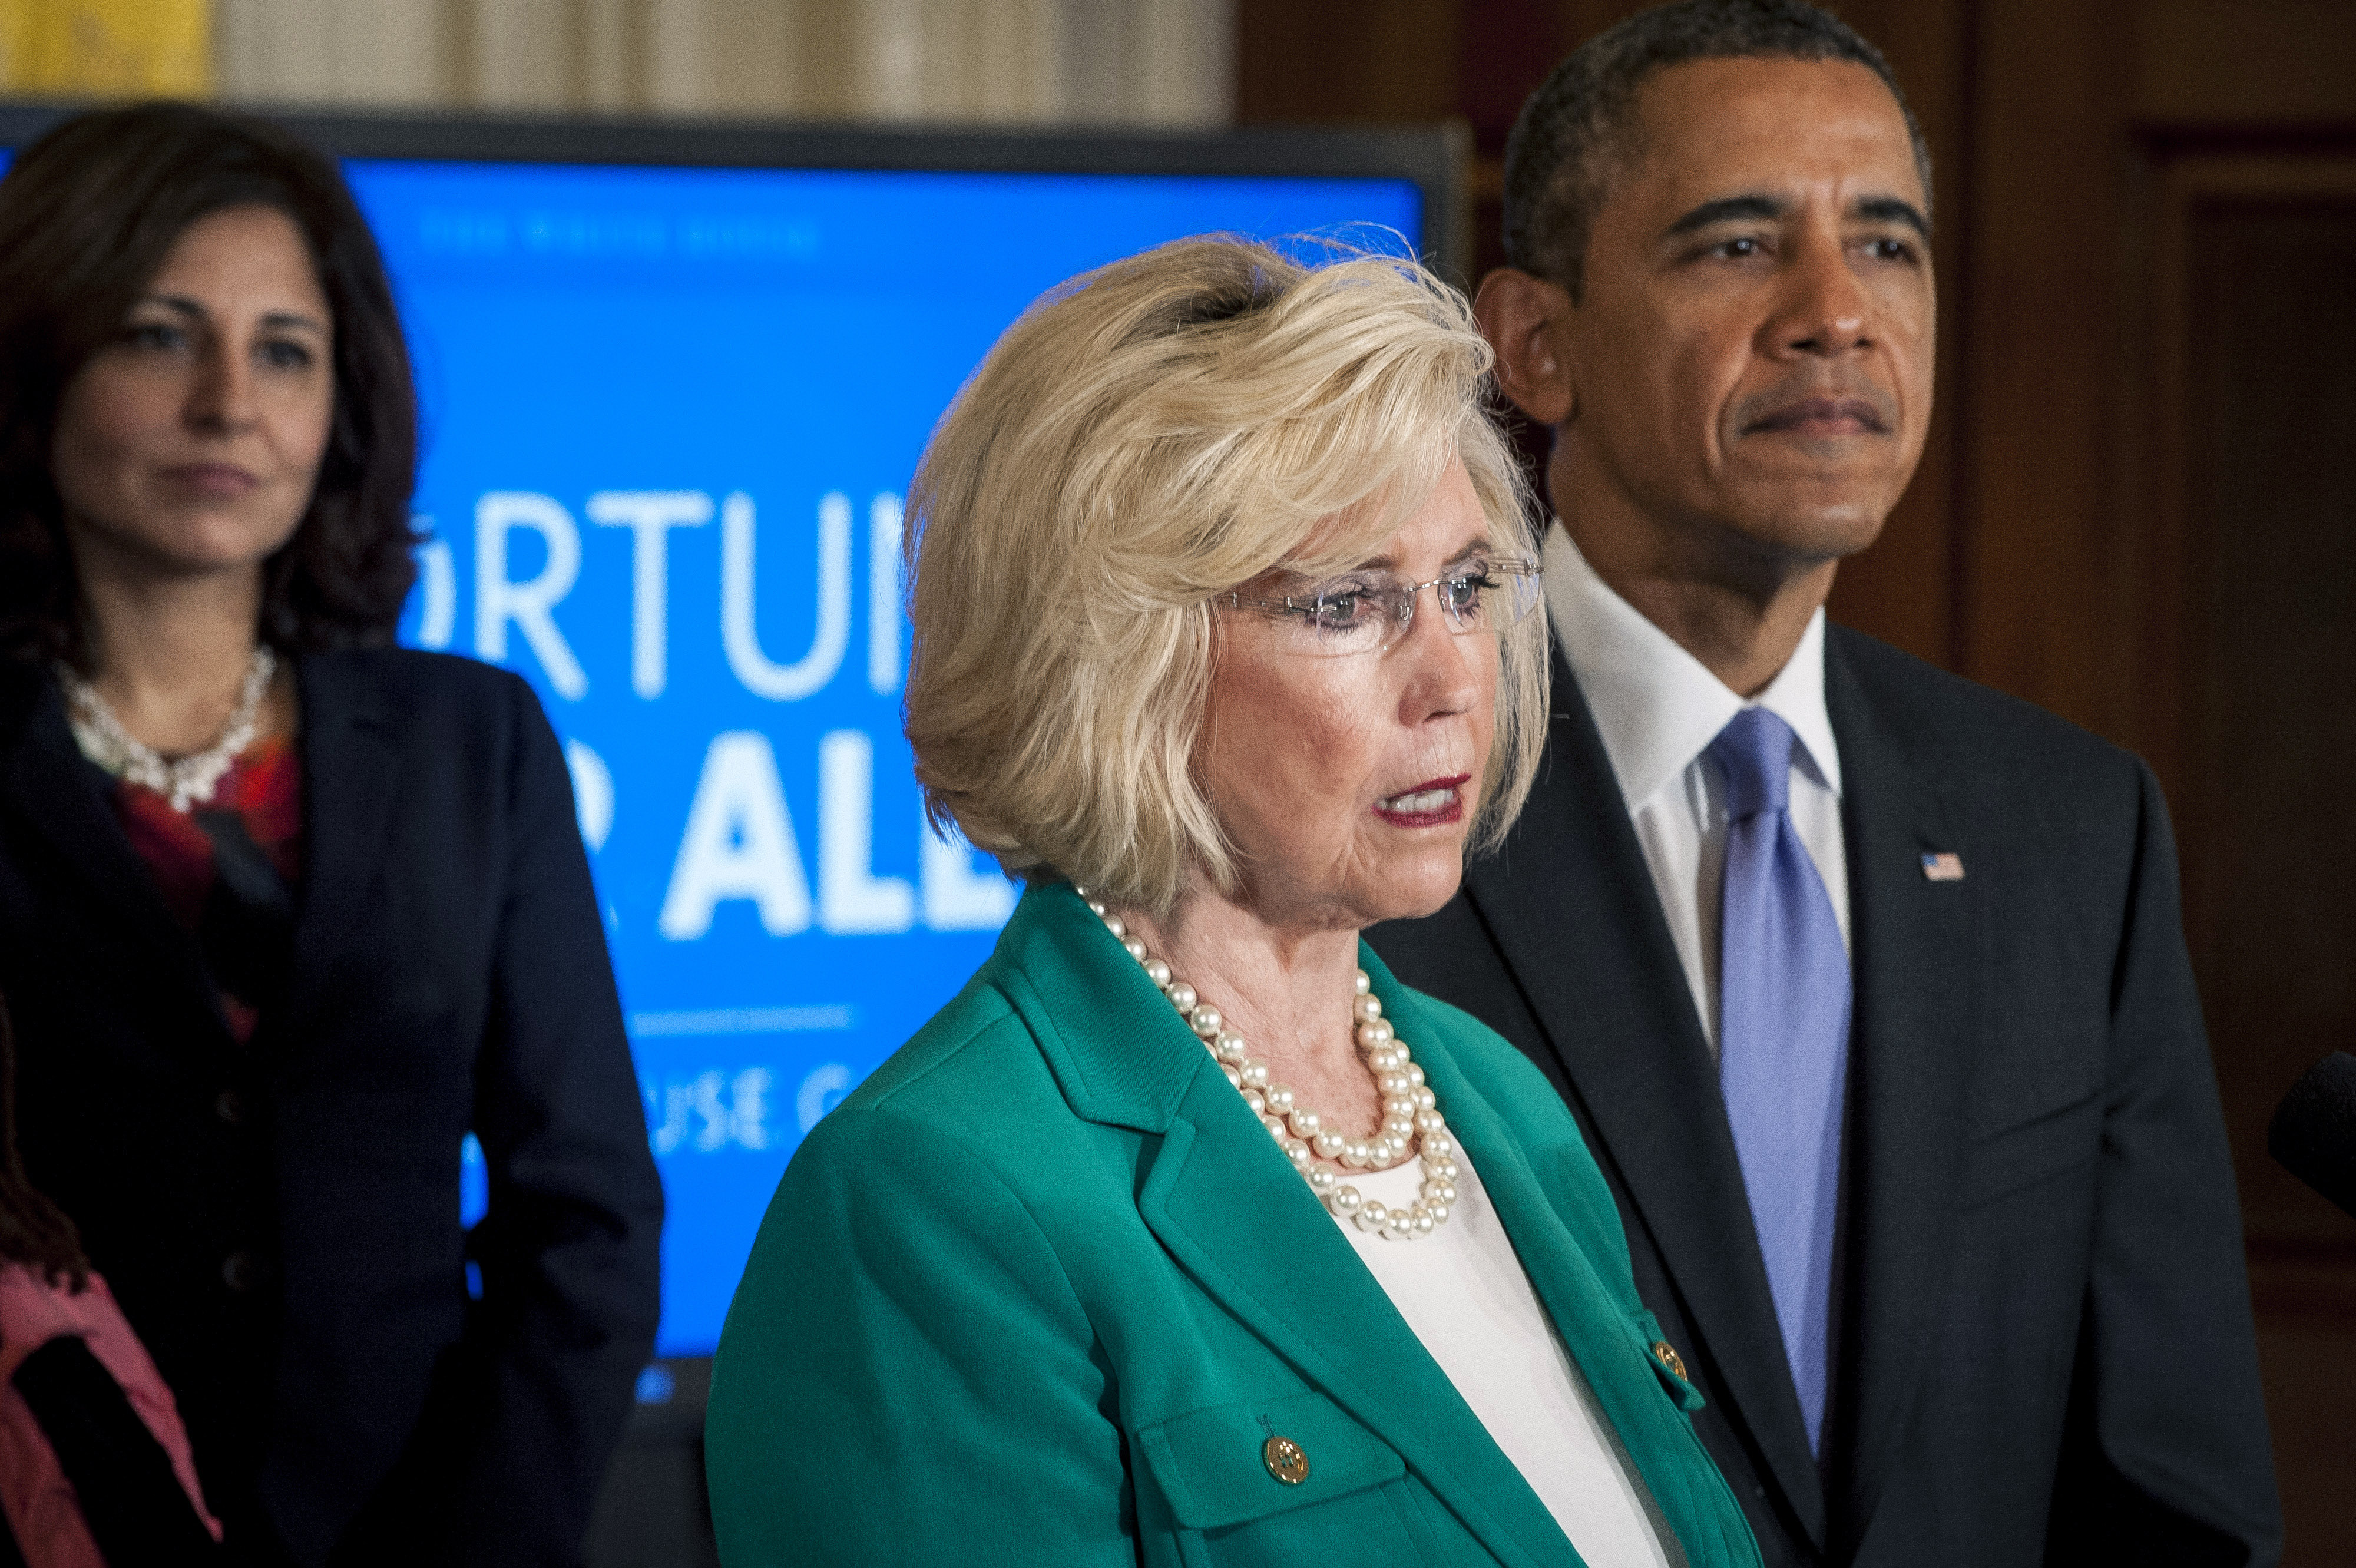 President Barack Obama looks on as pay discrimination victim Lilly Ledbetter delivers remarks at an event  marking Equal Pay Day in the East Room of the White House in Washington, D.C., U.S., on Tuesday, April 8, 2014.